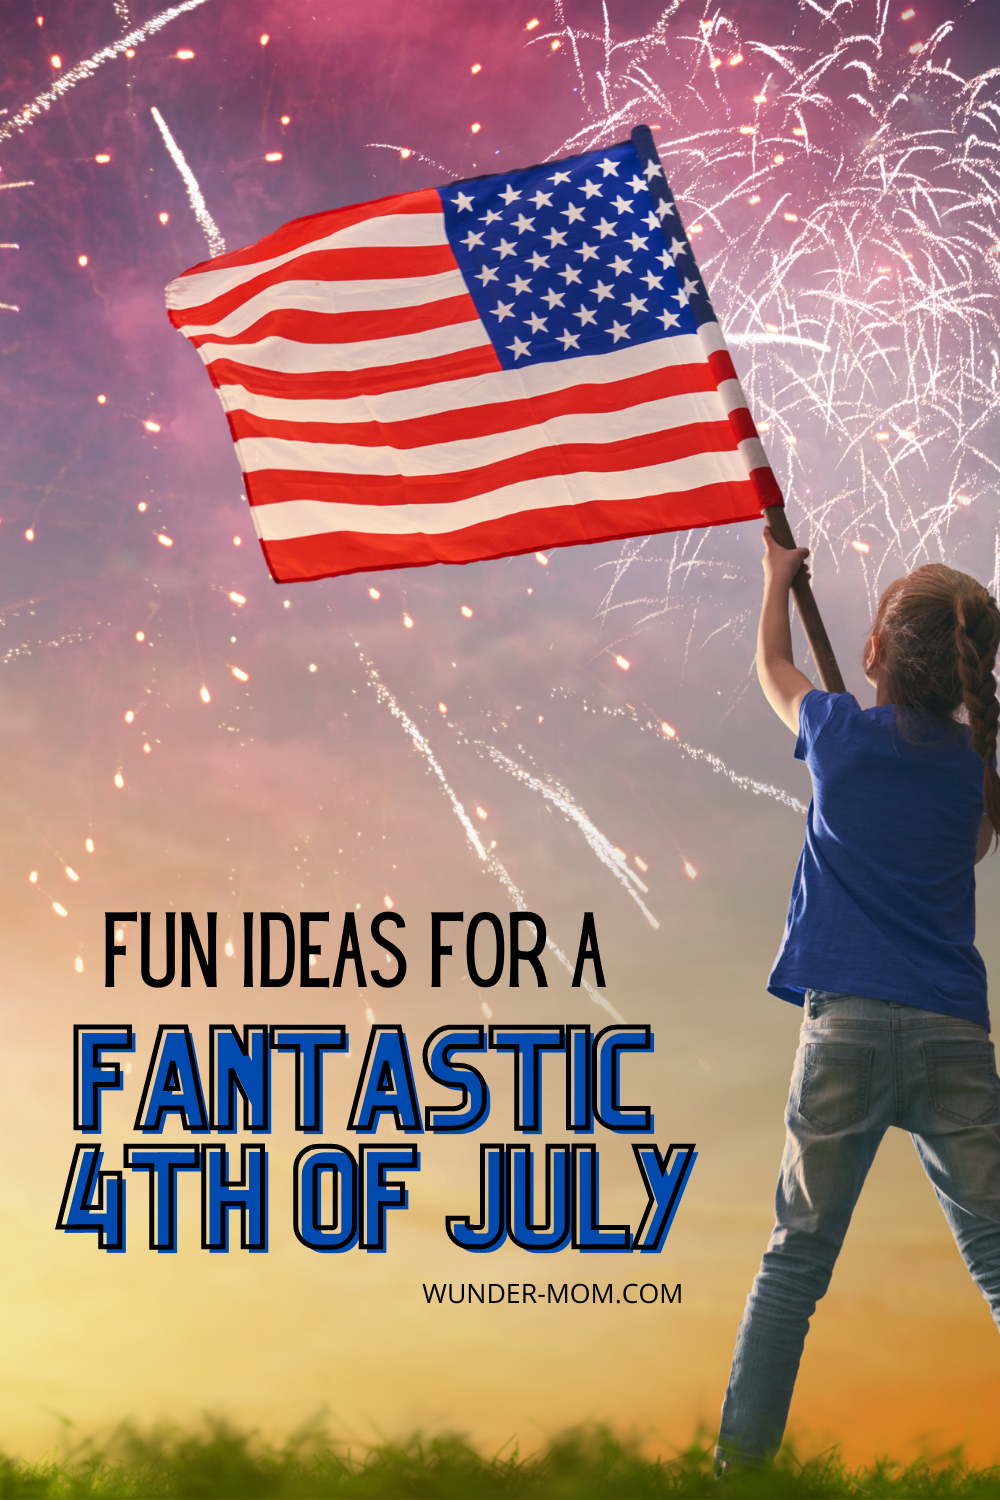 Fantastic ideas for a 4th of July party